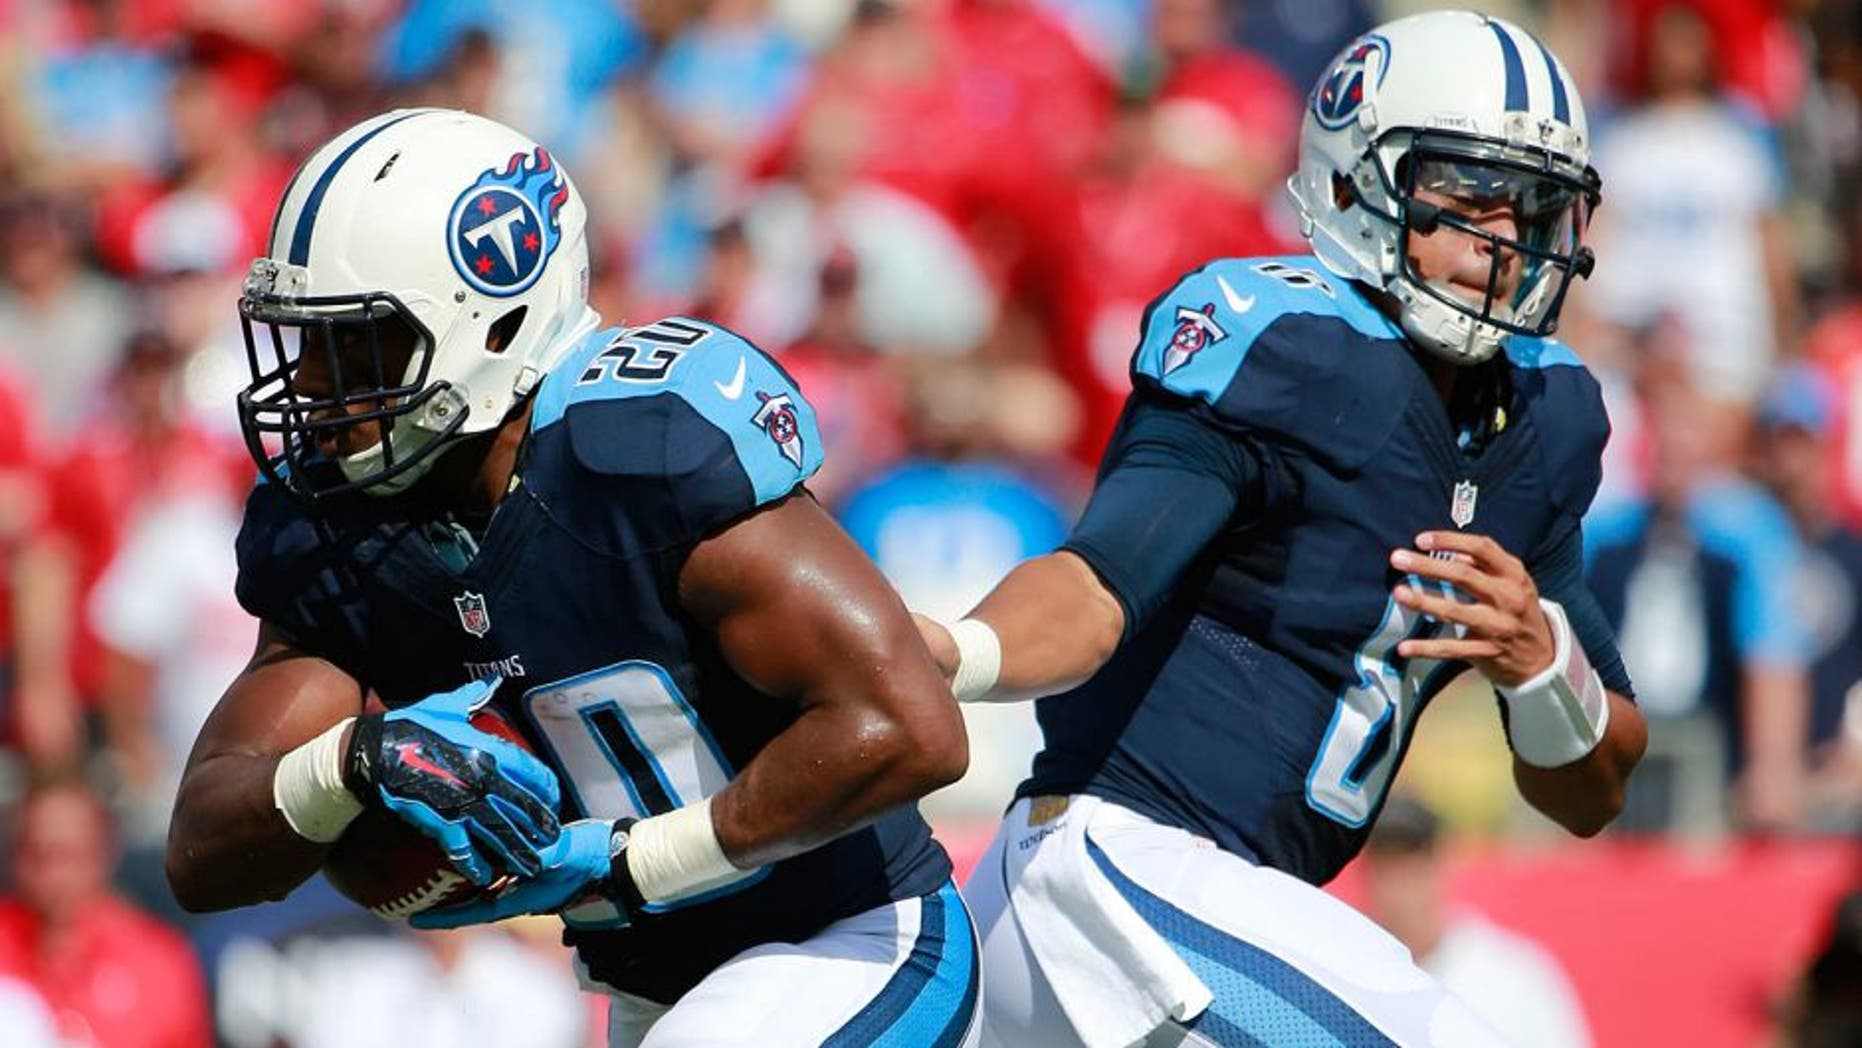 Sep 13, 2015; Tampa, FL, USA; Tennessee Titans quarterback Marcus Mariota (8) hands the ball off to running back Bishop Sankey (20) during the first quarter against the Tampa Bay Buccaneers at Raymond James Stadium. Mandatory Credit: Kim Klement-USA TODAY Sports